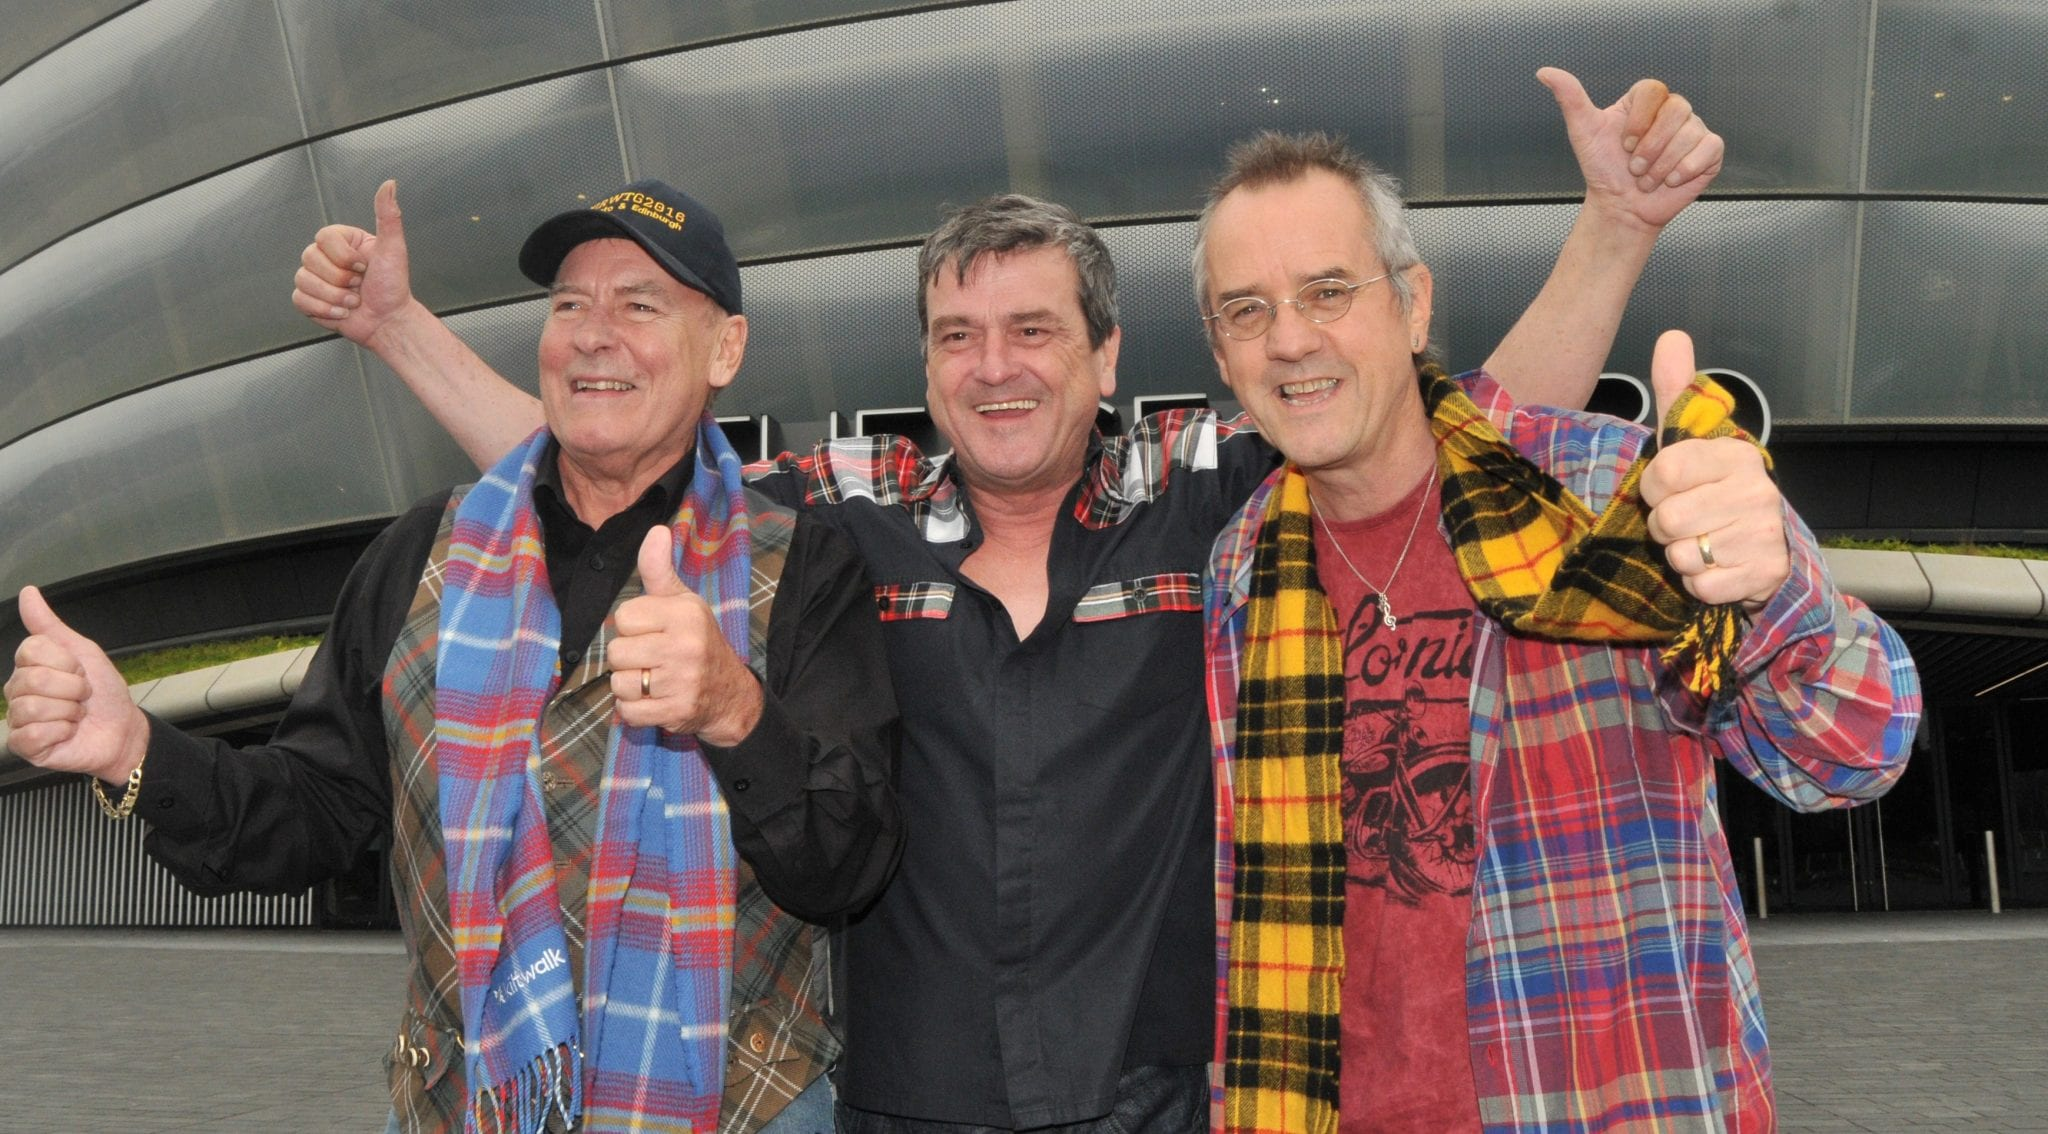 Bay City Rollers Super Fans Can Grab Half-Price Tickets  For A Shang-A-Lang-A-Reunion